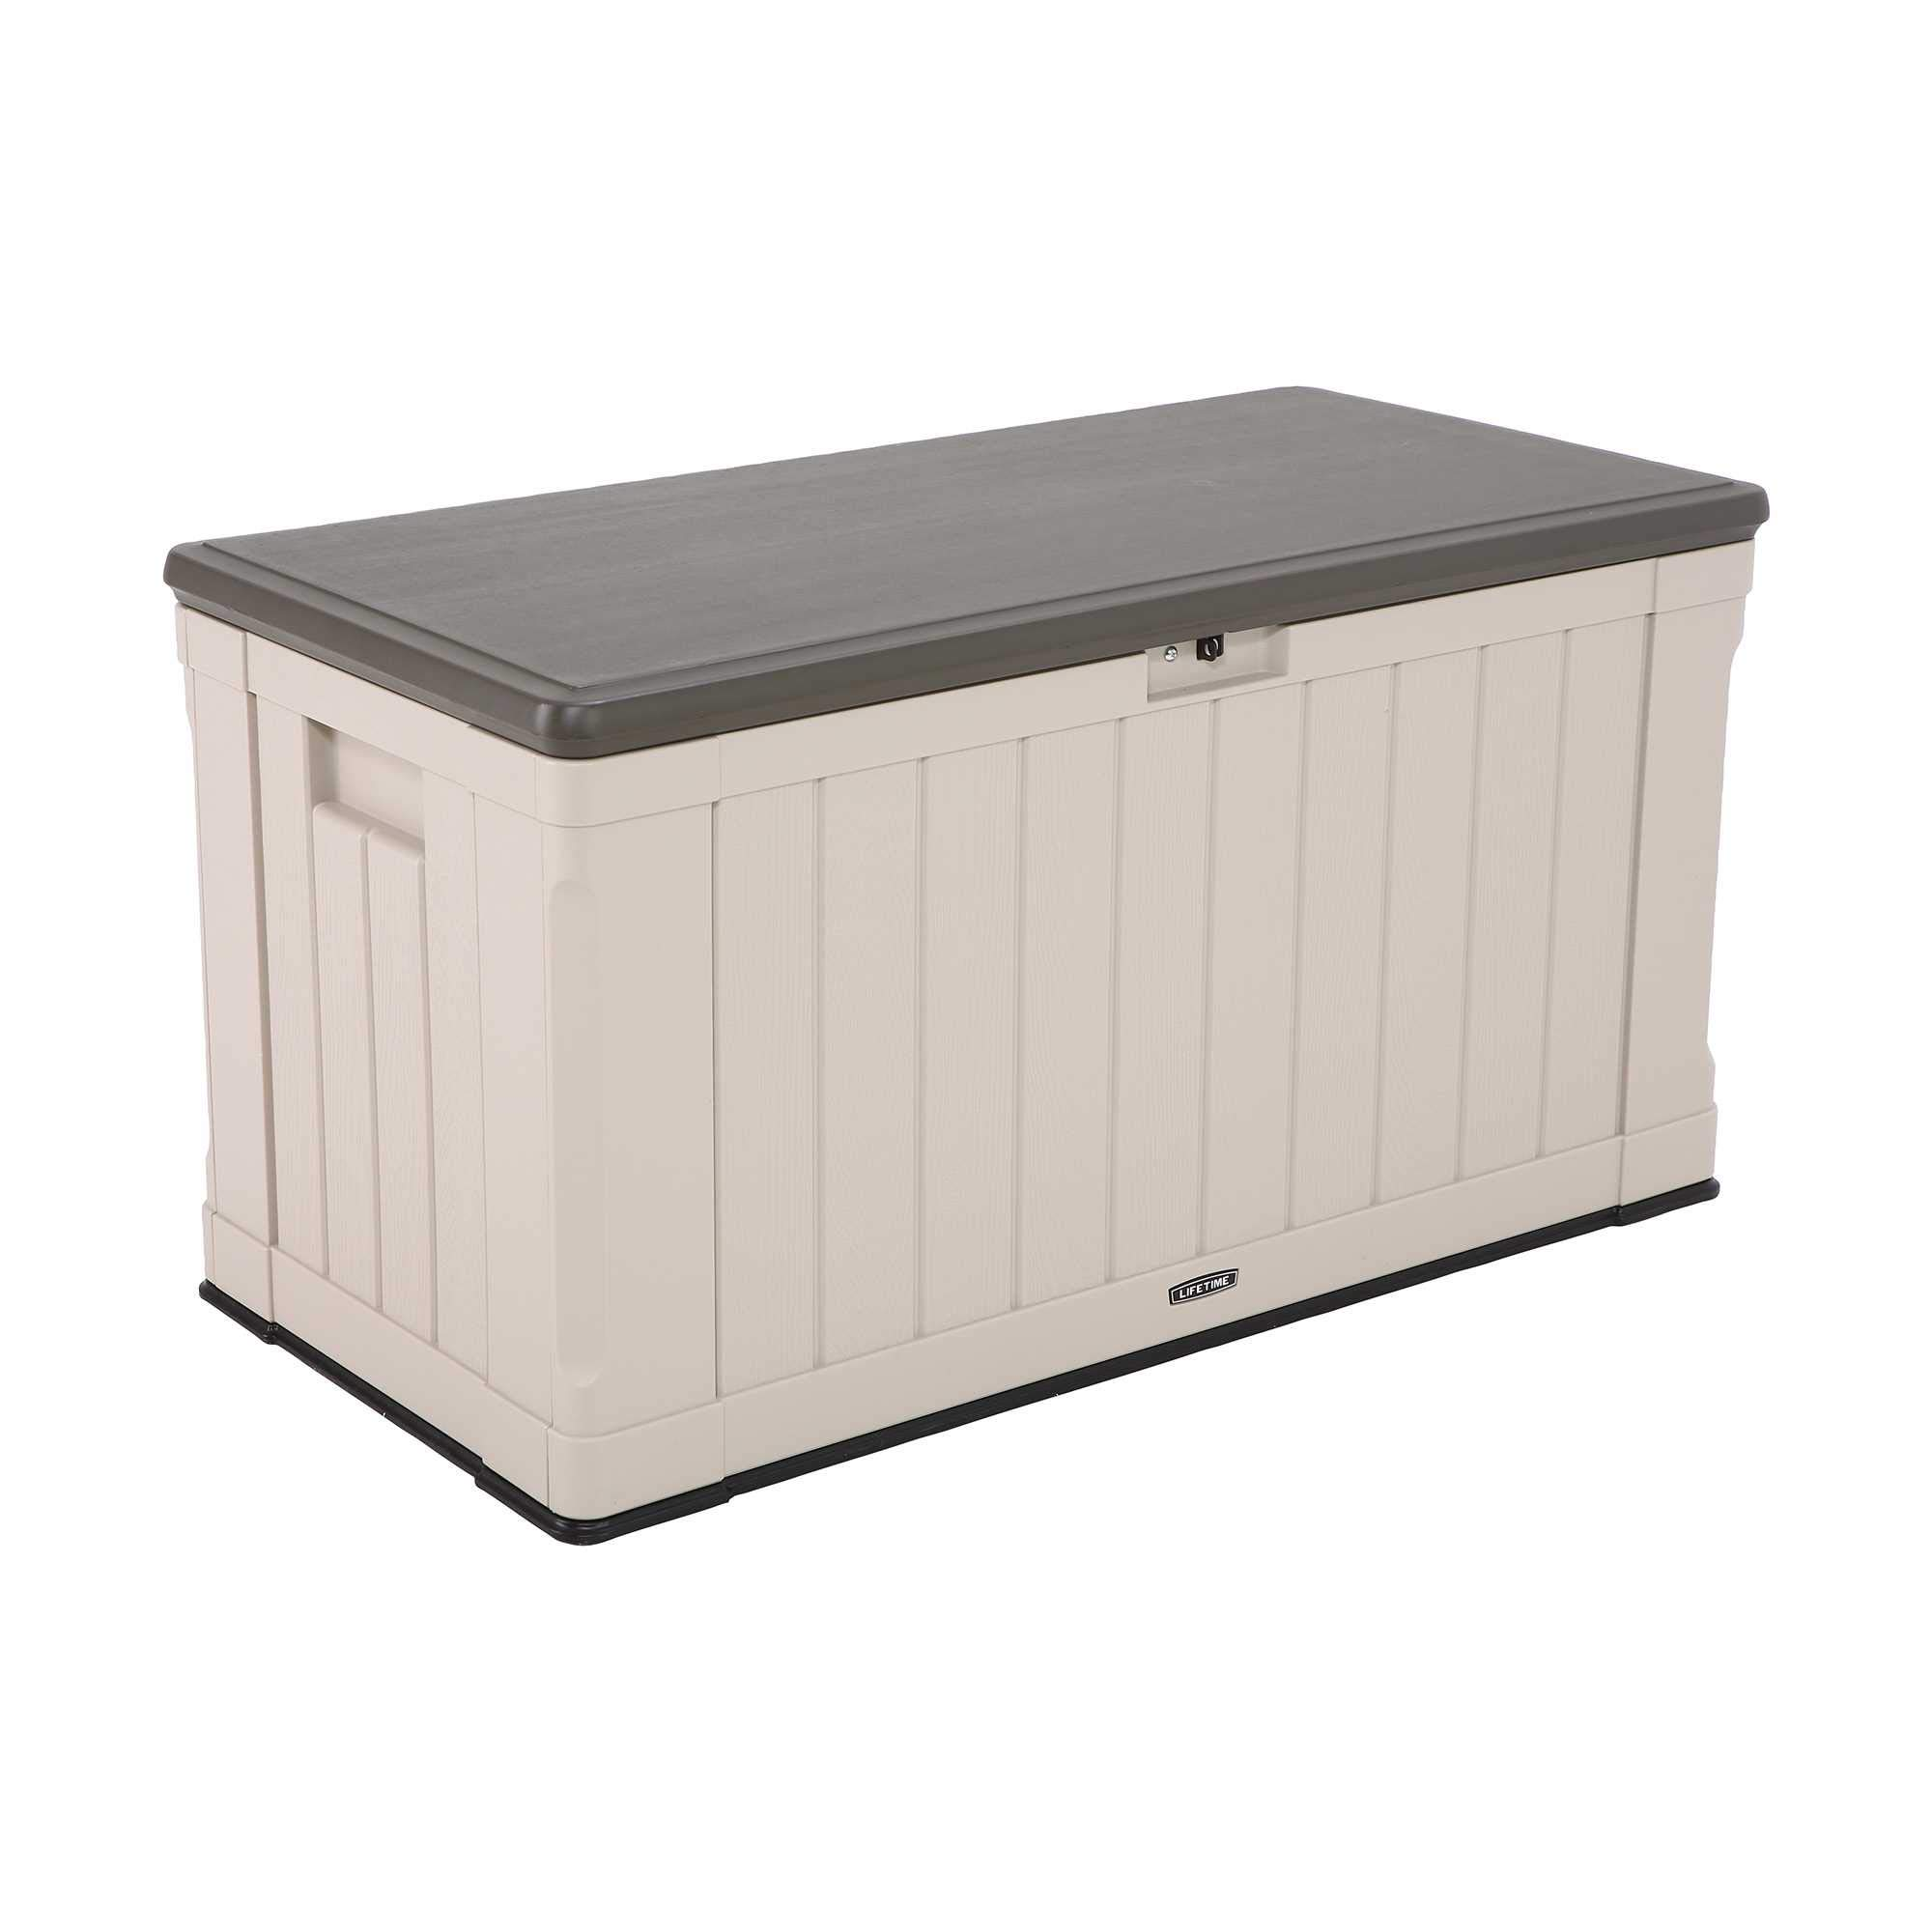 Lifetime 60186 Heavy-Duty Outdoor Storage Deck Box, 116 Gallon, Desert Sand/Brown by Lifetime